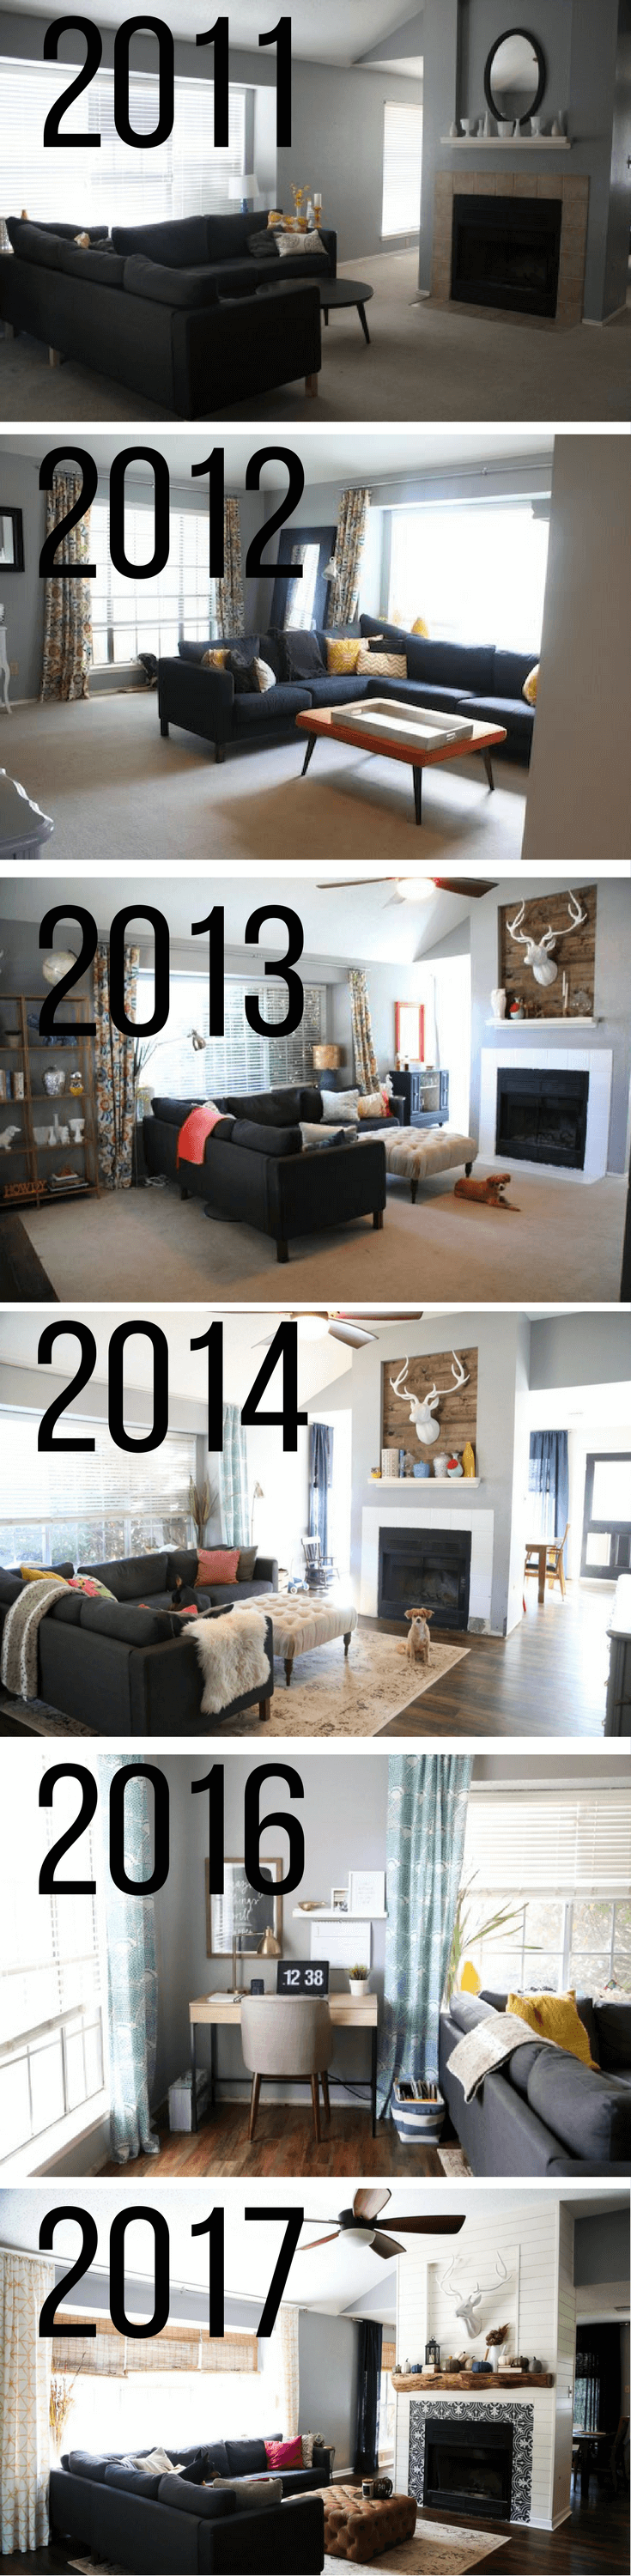 Before and after living room renovation - photos of a living room transformation